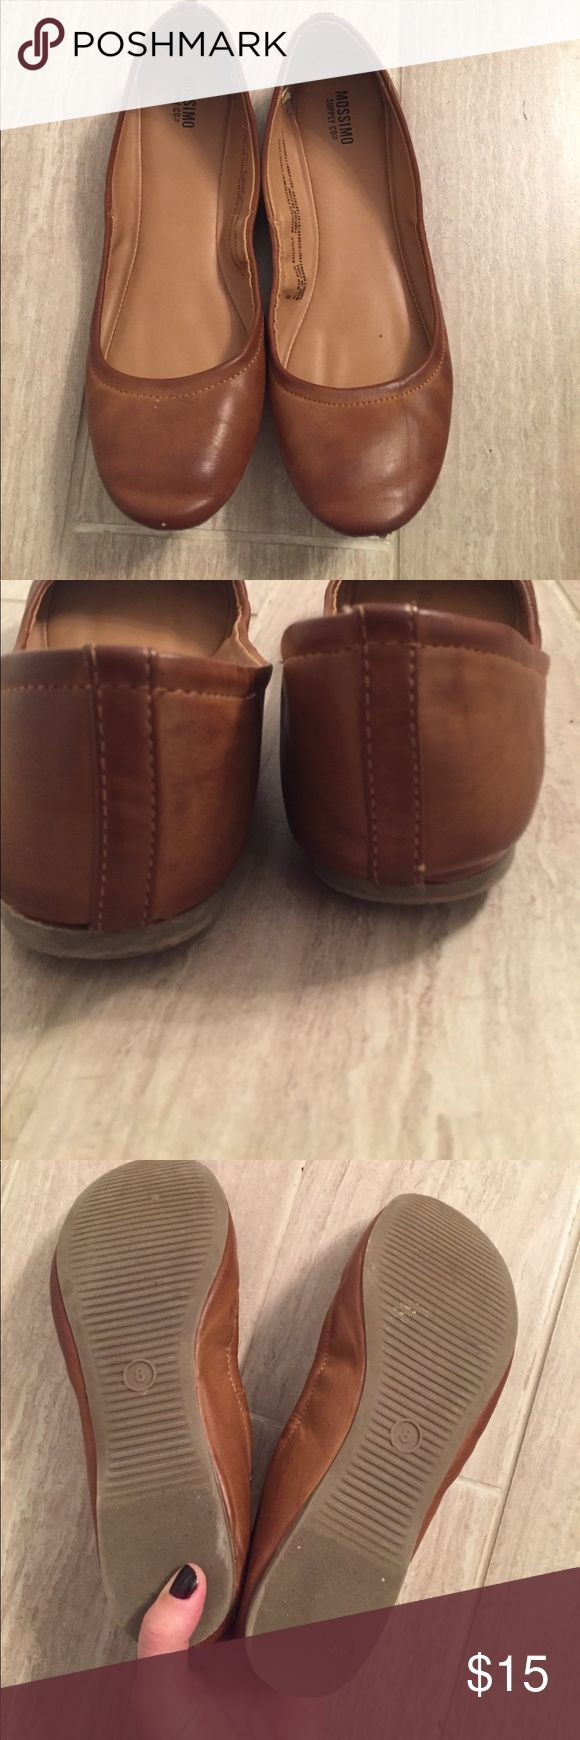 Camel ballet flats Faux leather. In great condition Mossimo Supply Co Shoes Flats & Loafers